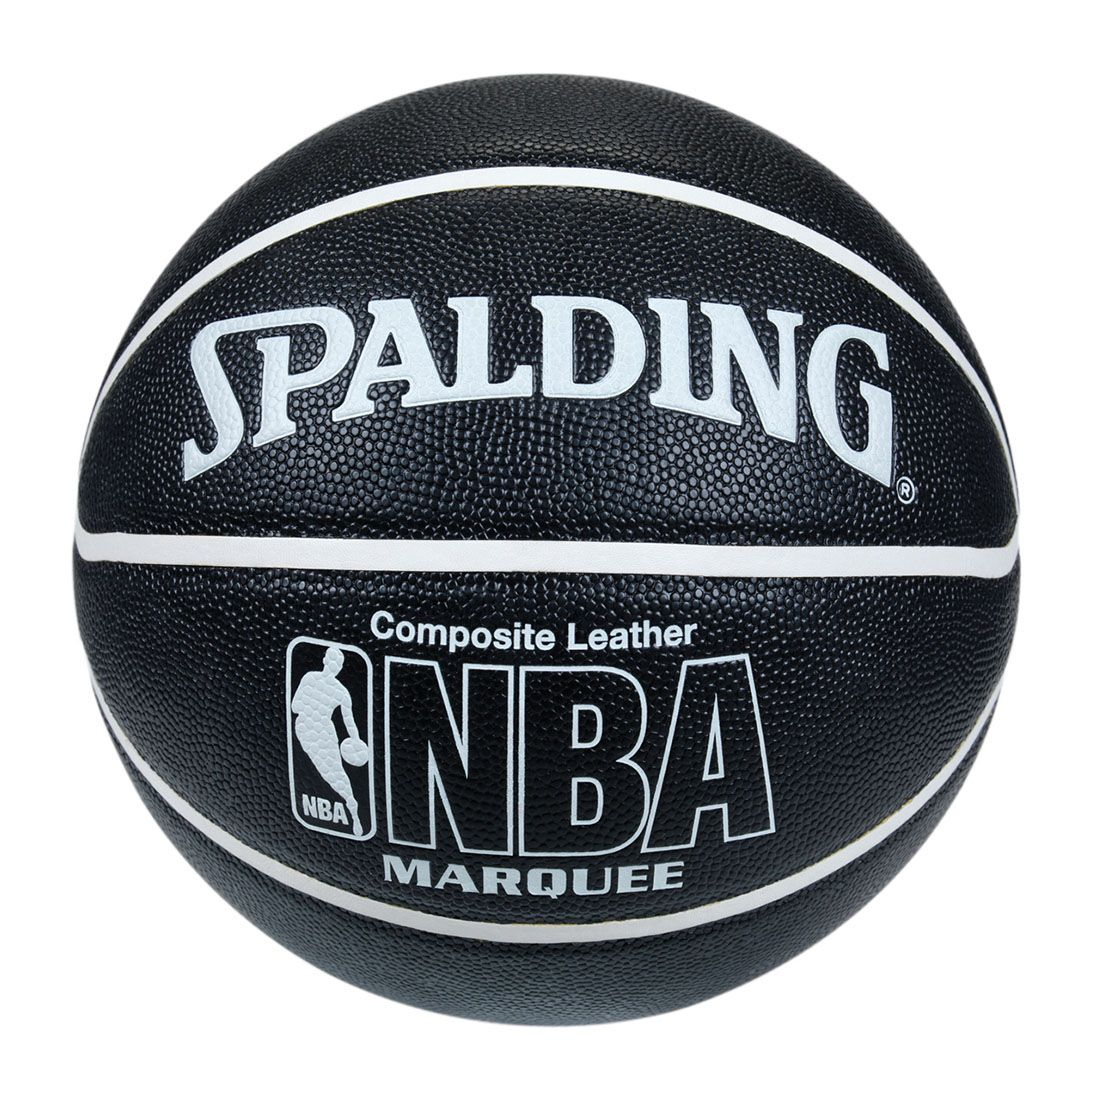 spalding nba marquee basketball. Black Bedroom Furniture Sets. Home Design Ideas